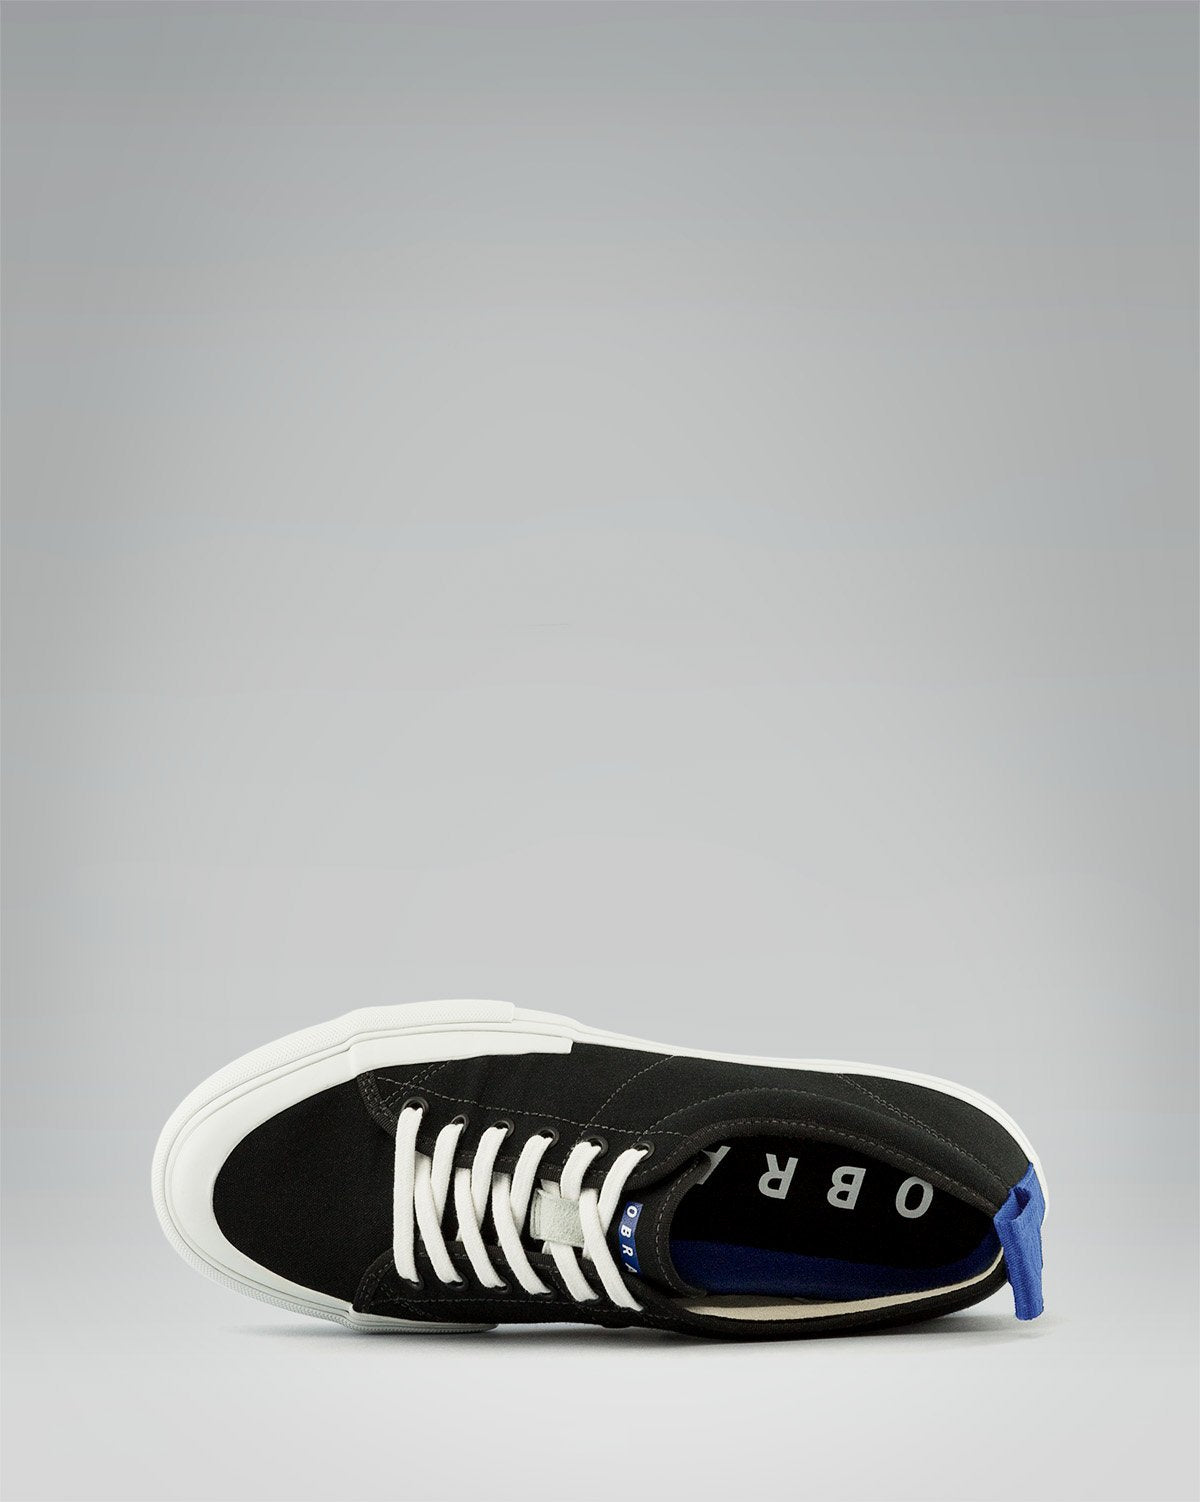 240 CANVAS LOW WRAP TOE<br />Black/White/OBRA Blue